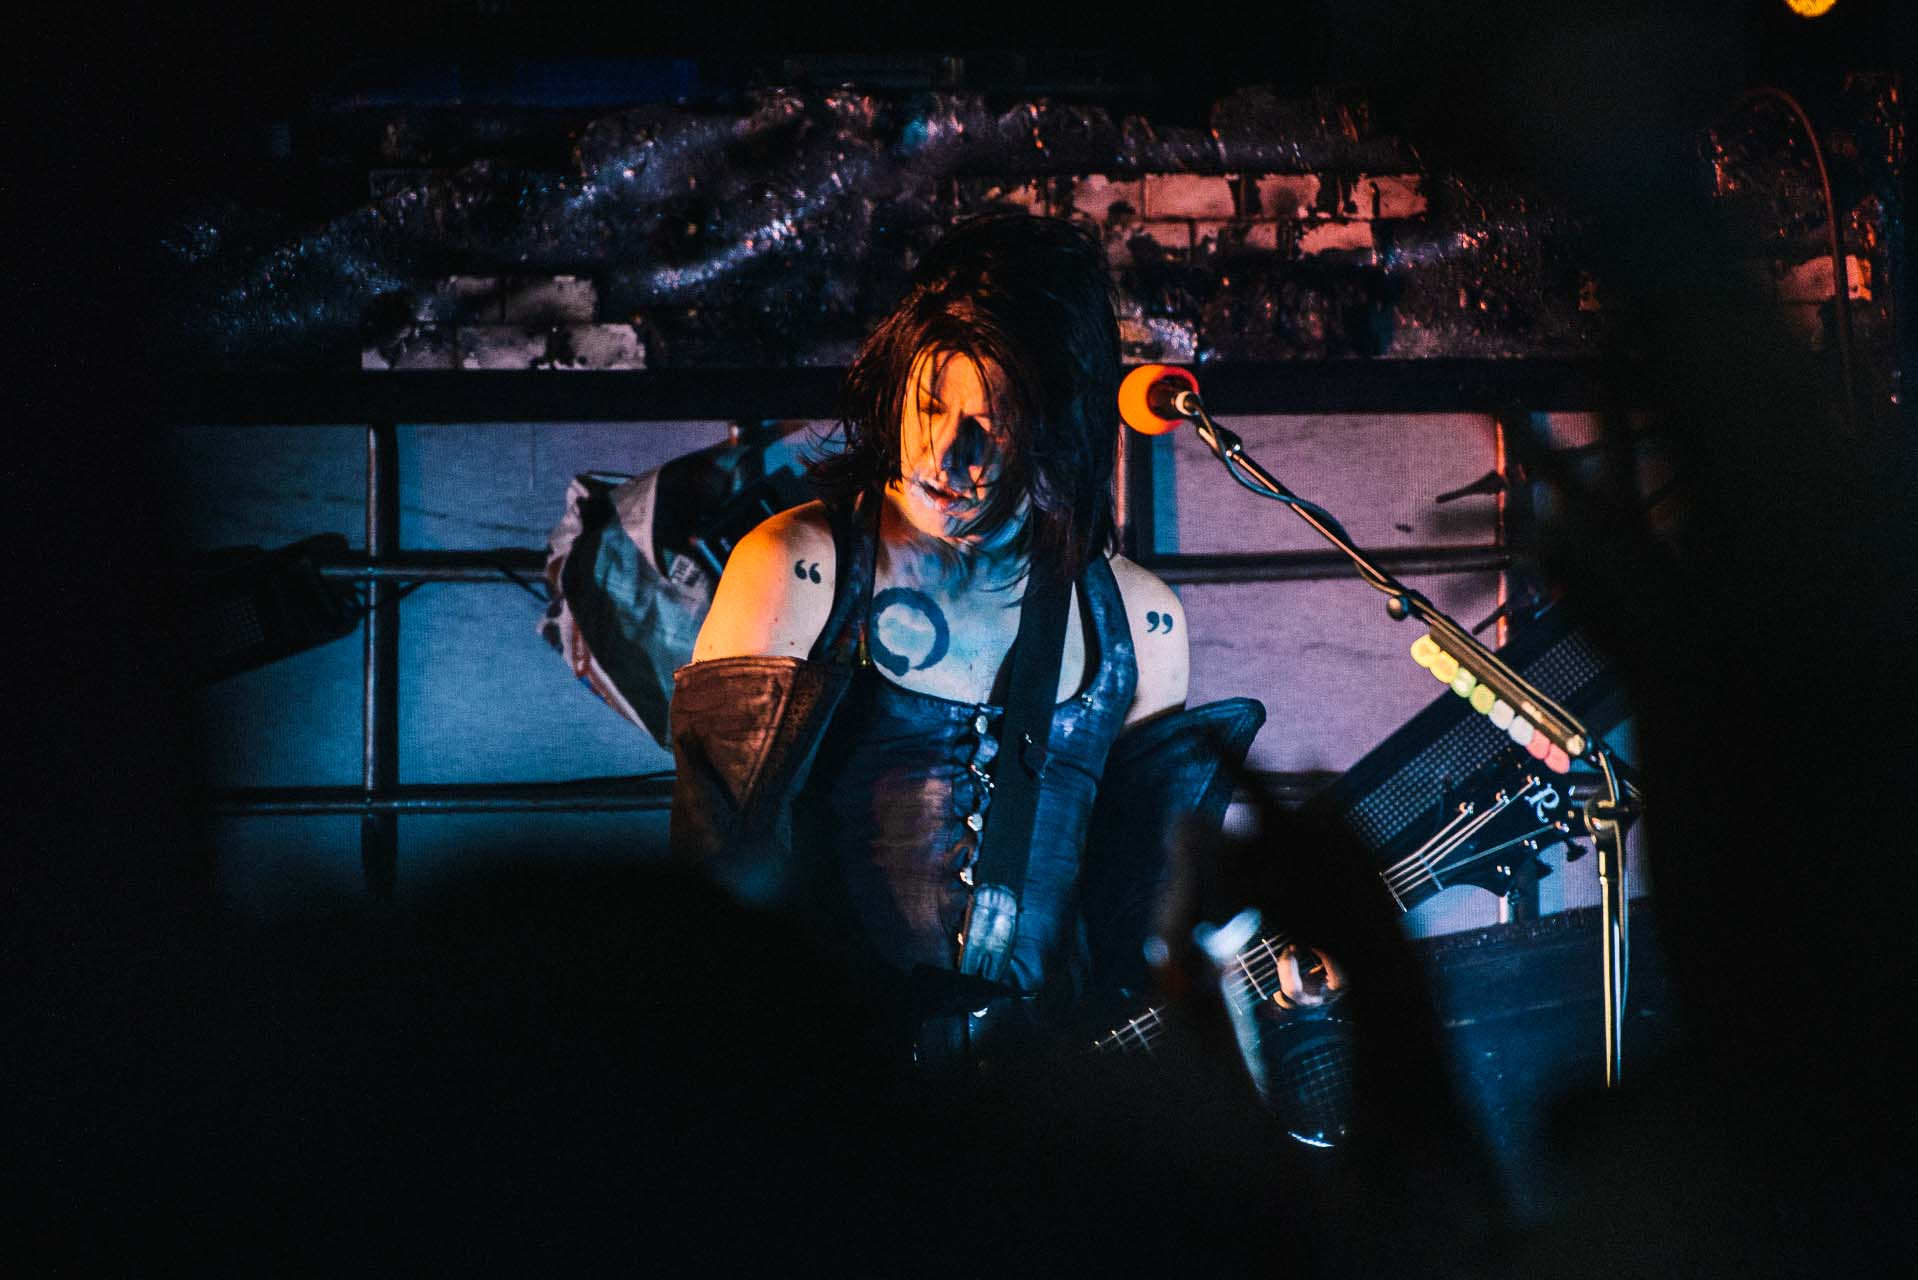 marilyn_manson_live_egyptian_room_indianapolis_2013-32